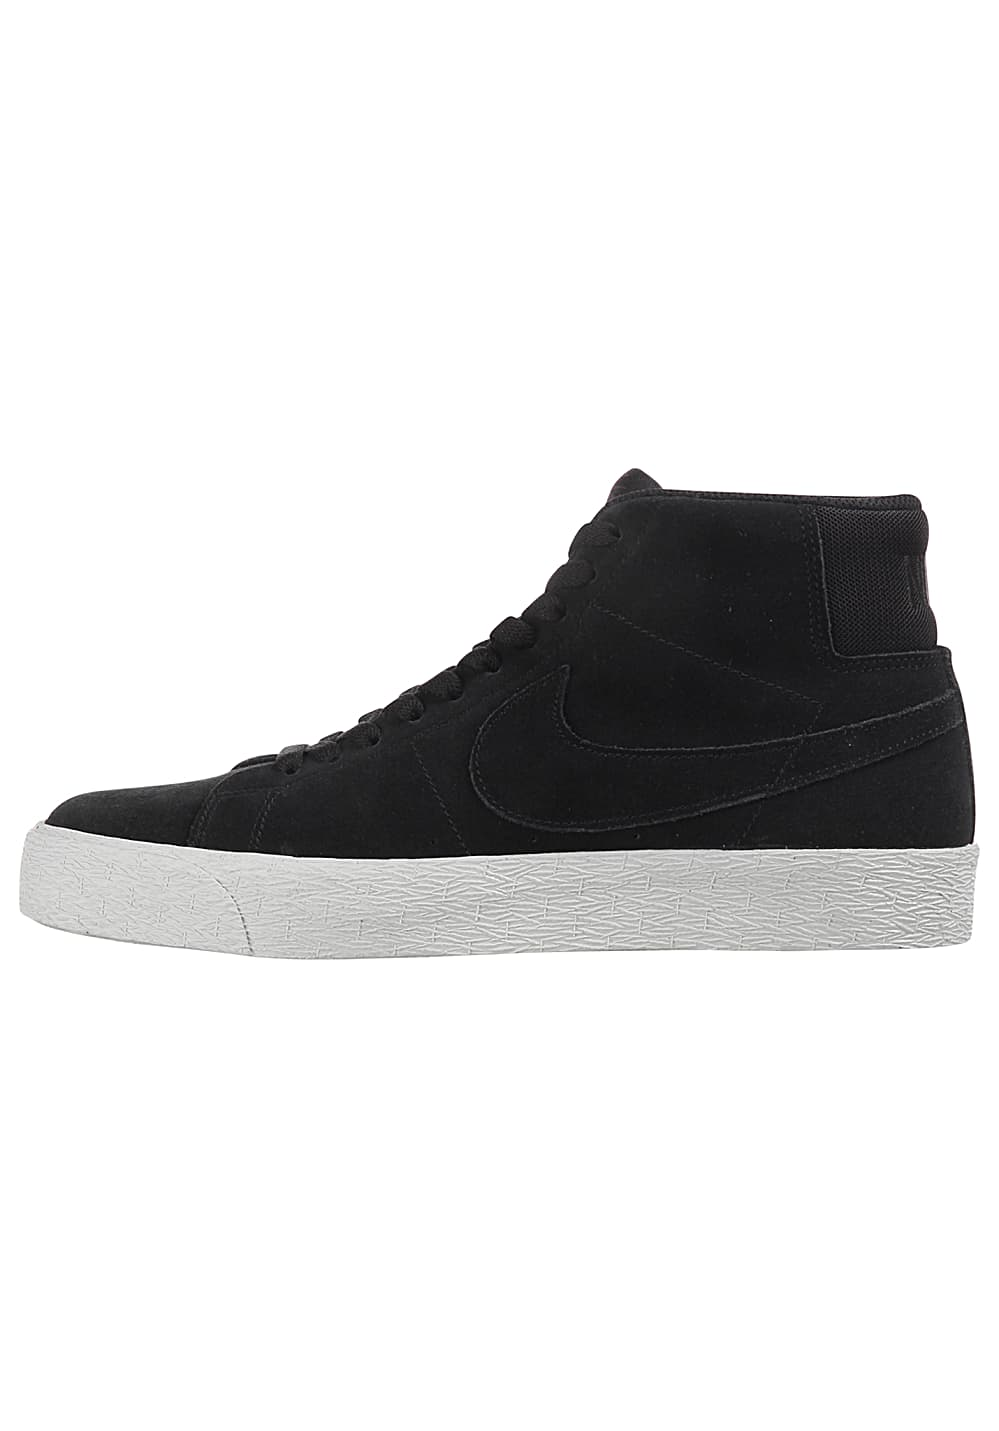 NIKE SB Zoom Blazer Mid Decon Sneakers for Men Black